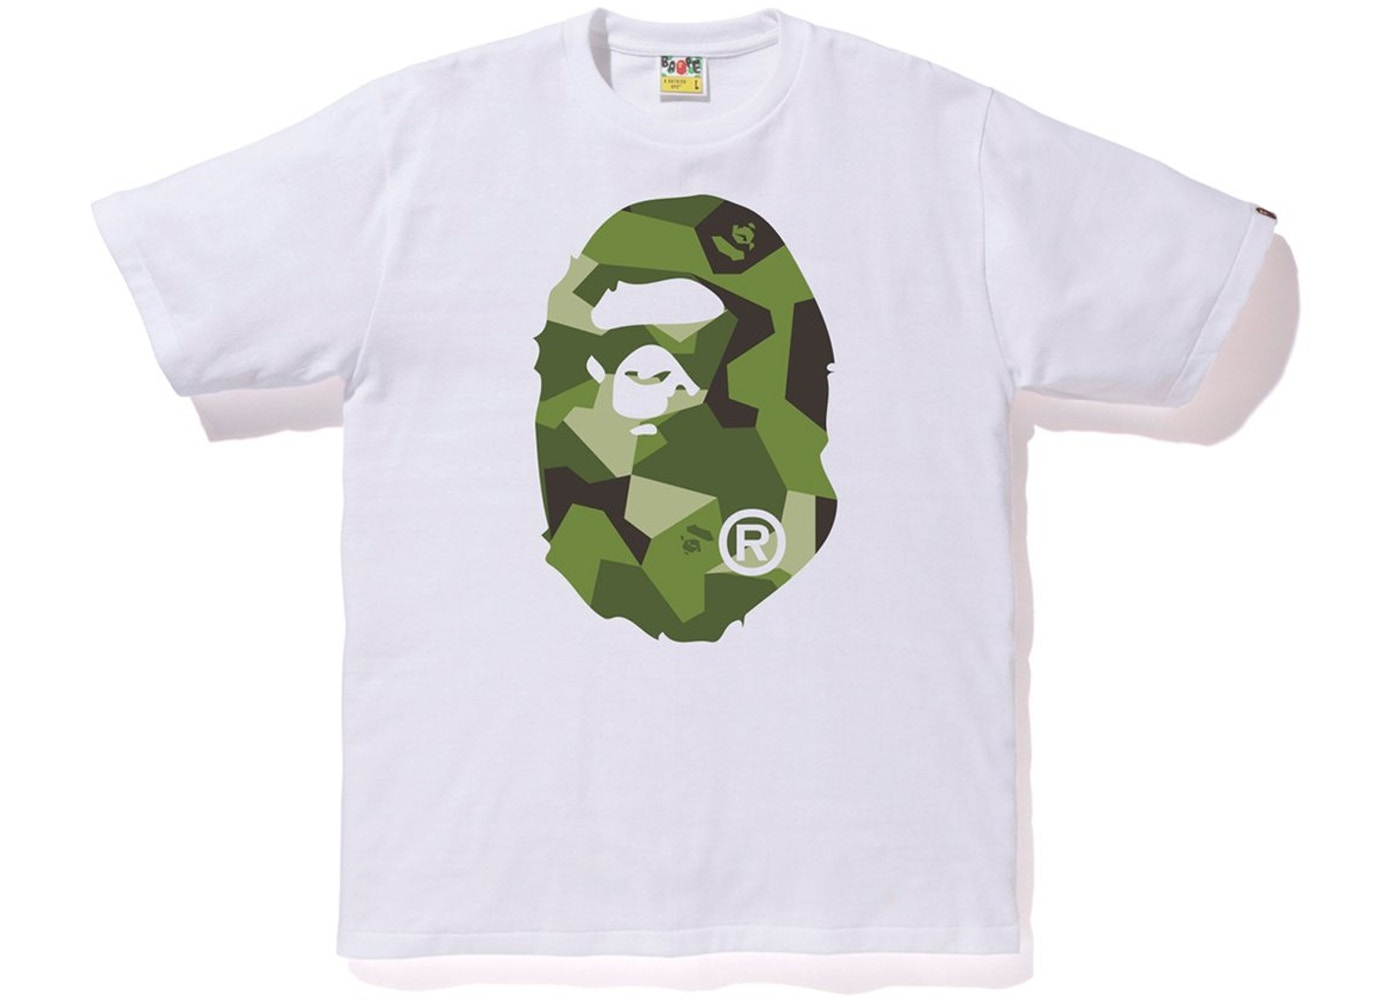 0010bd57 BAPE Splinter Camo Big Ape Head Tee White/Olive - FW18